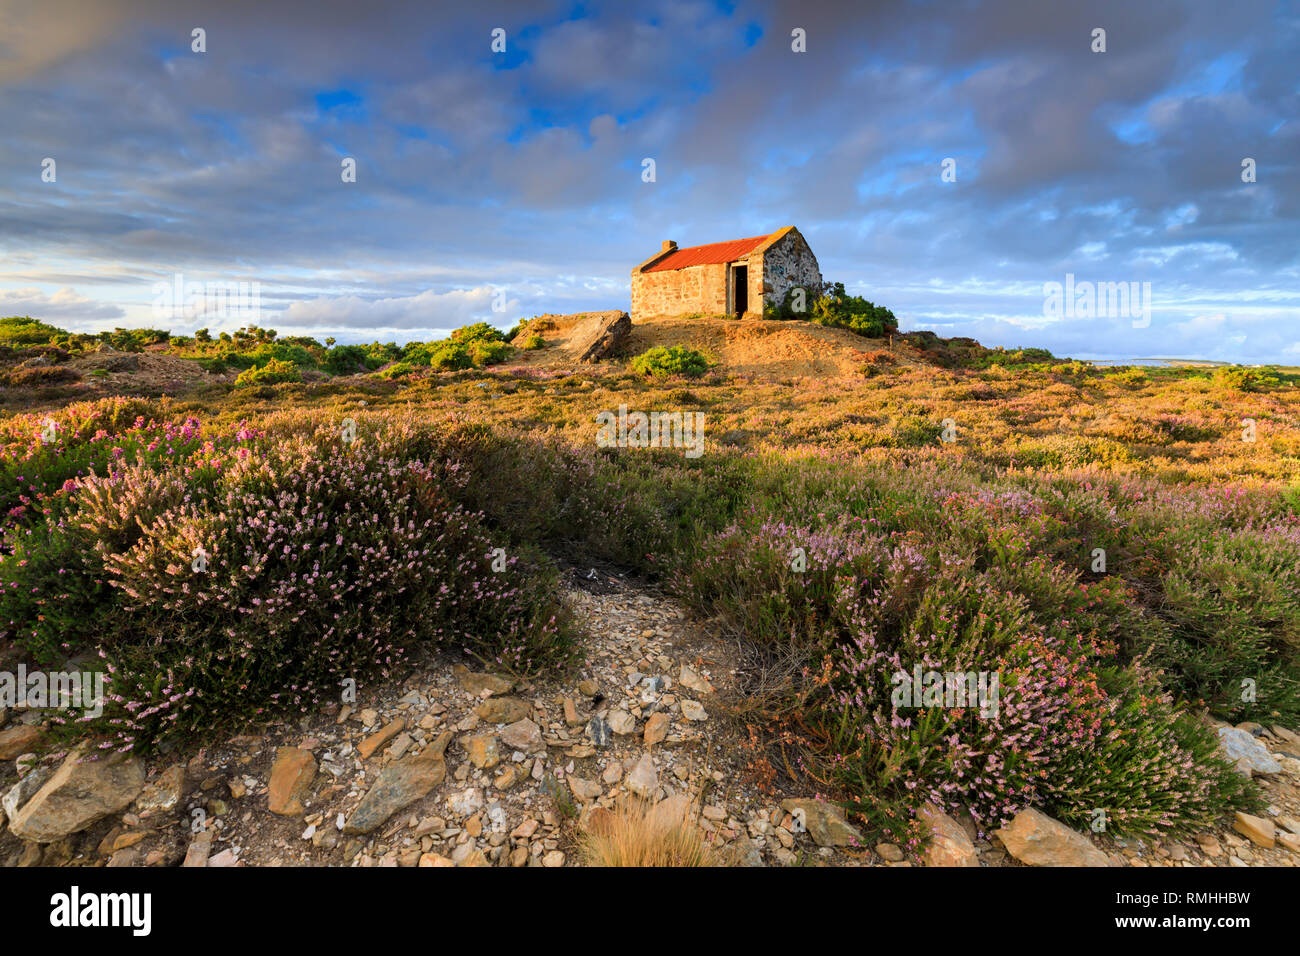 The crib hut near Tywarnhalye Engine House near Porthtowan in Cornwall. - Stock Image